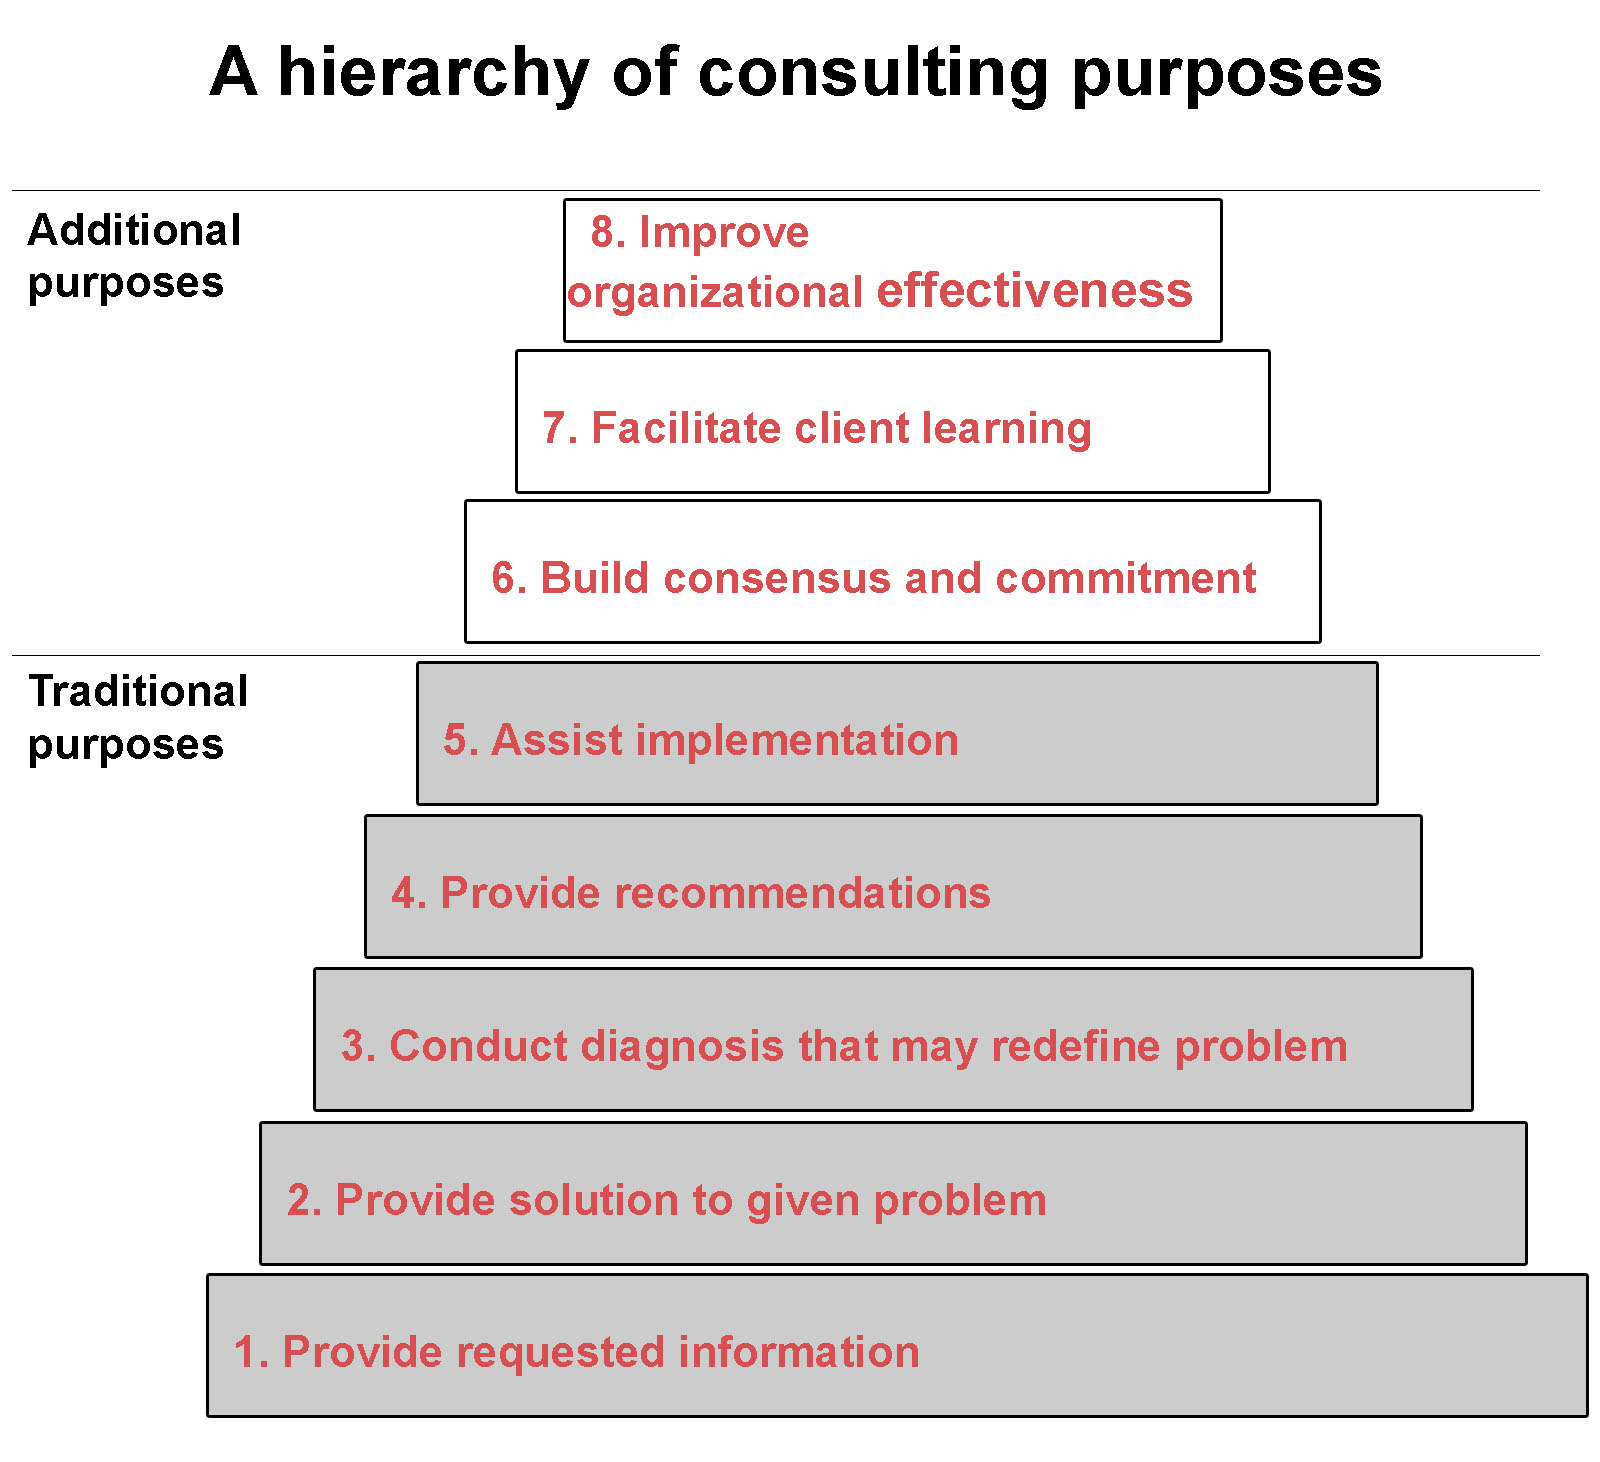 hierarchy_of_consulting_purposes.jpg